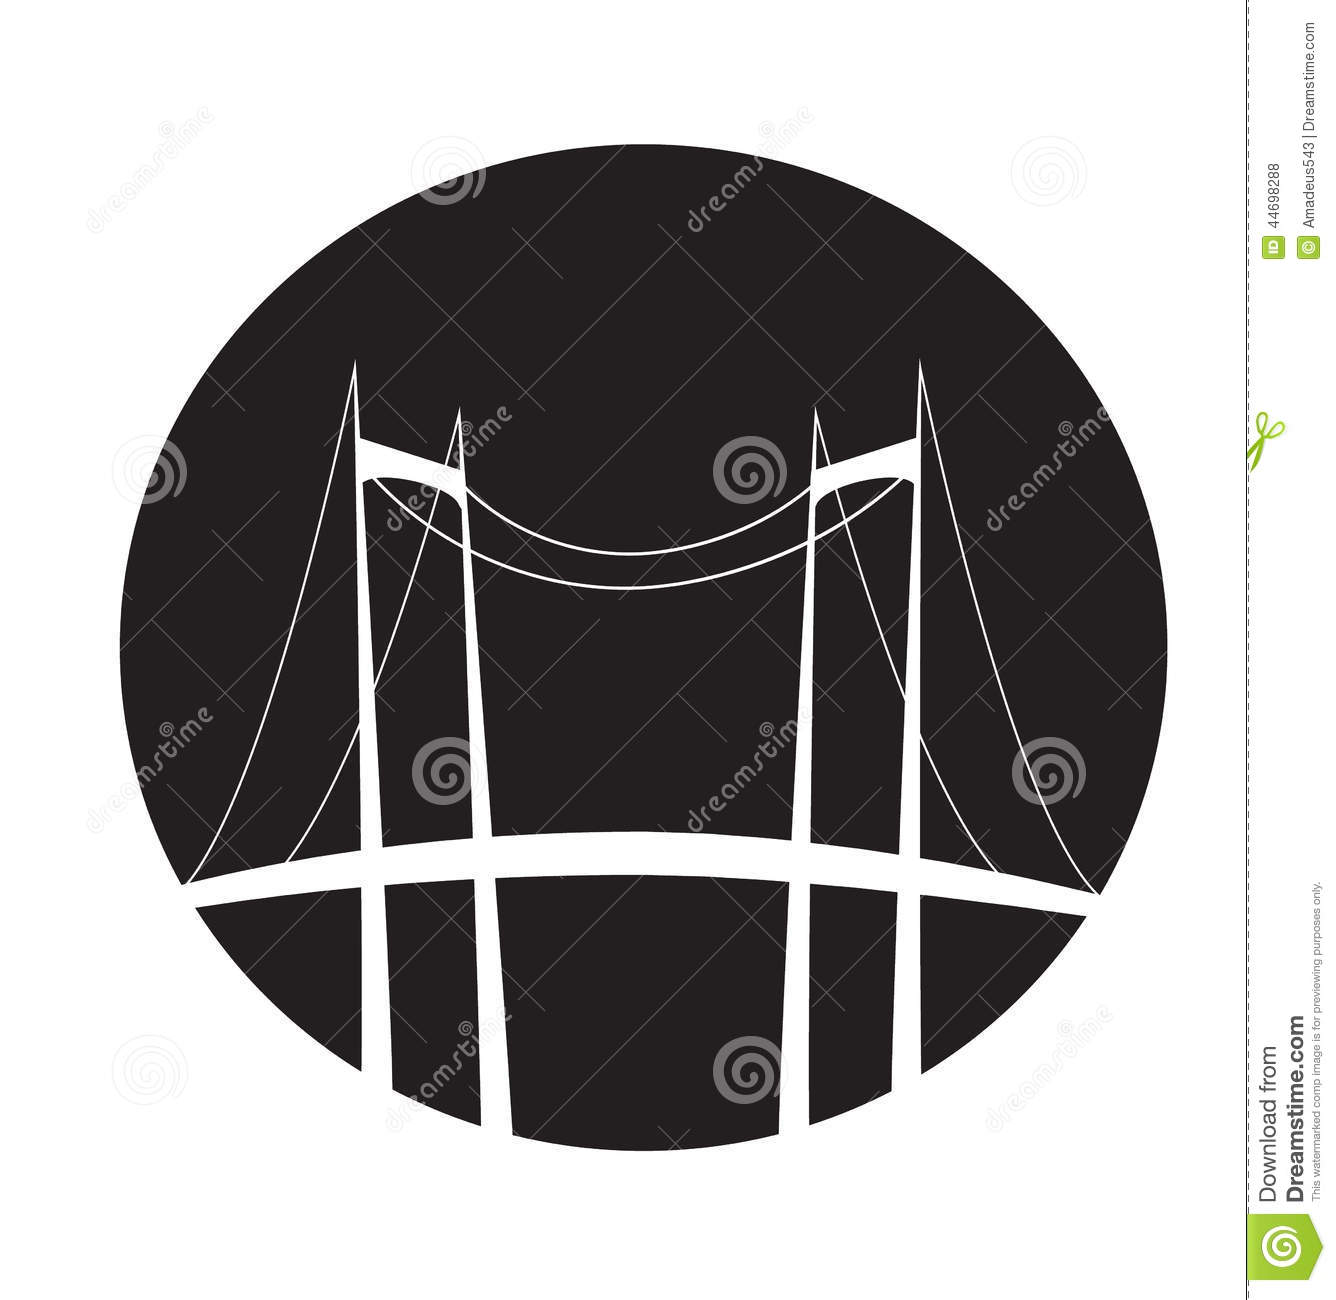 Bridge Symbol Stock Vector Illustration Of Illustration